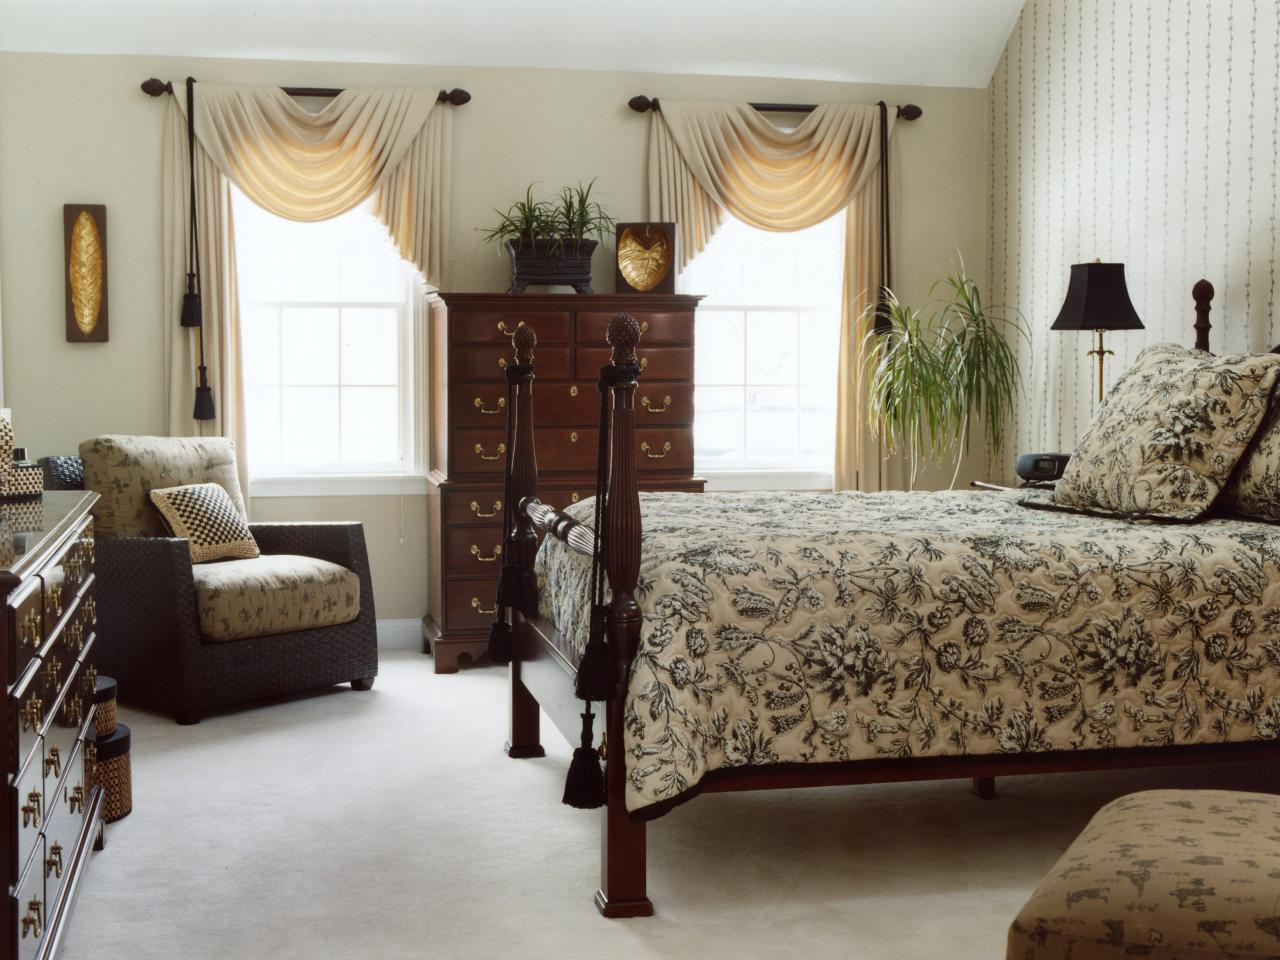 Blue Toile Bedroom Ideas: Taupe Black White And Brown Rule In This Master Suite The